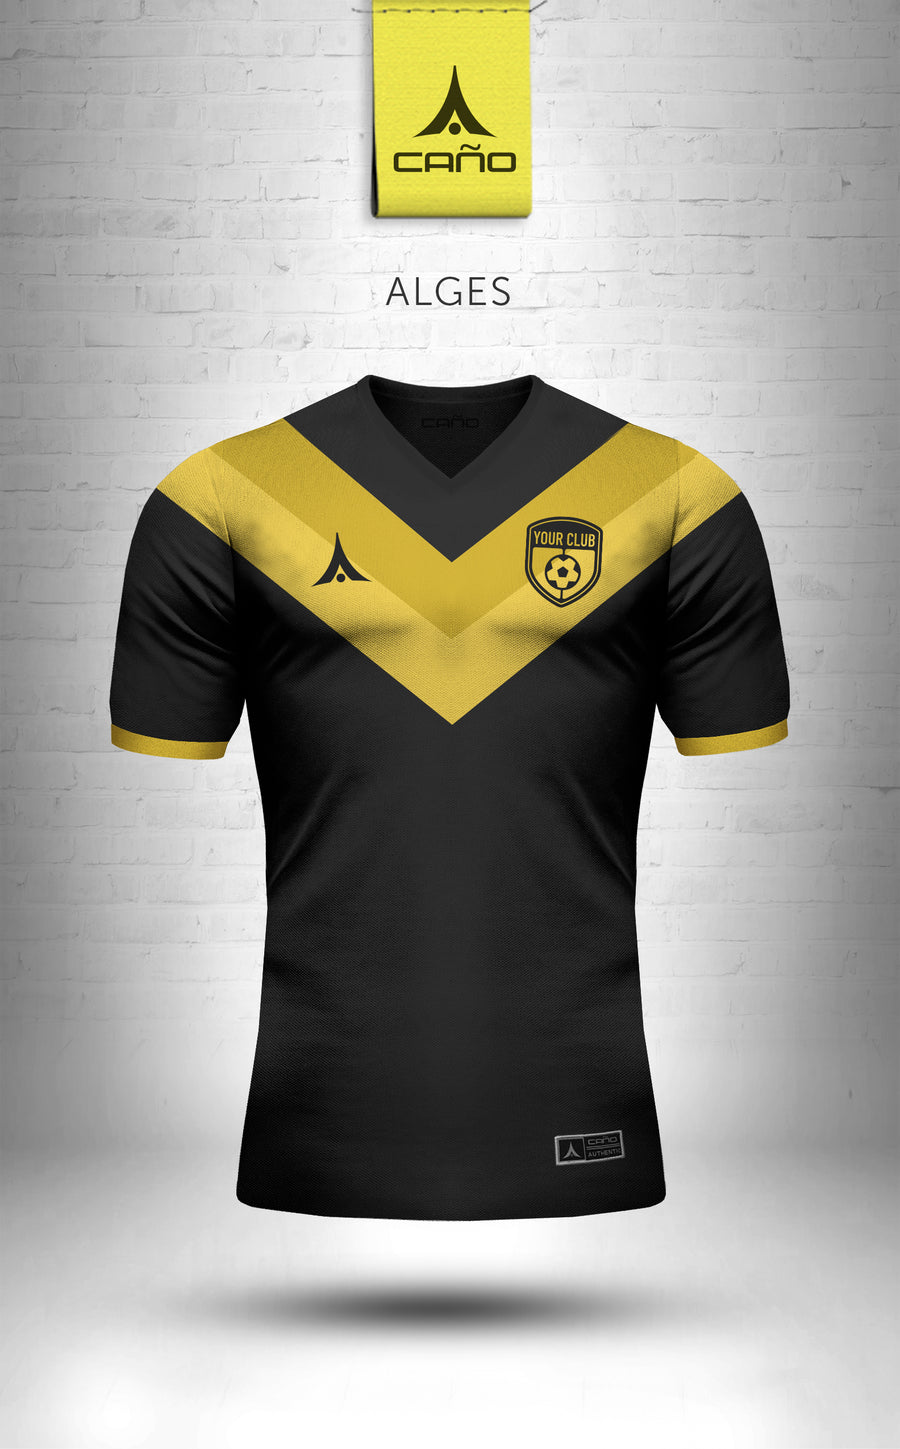 Alges in black/gold